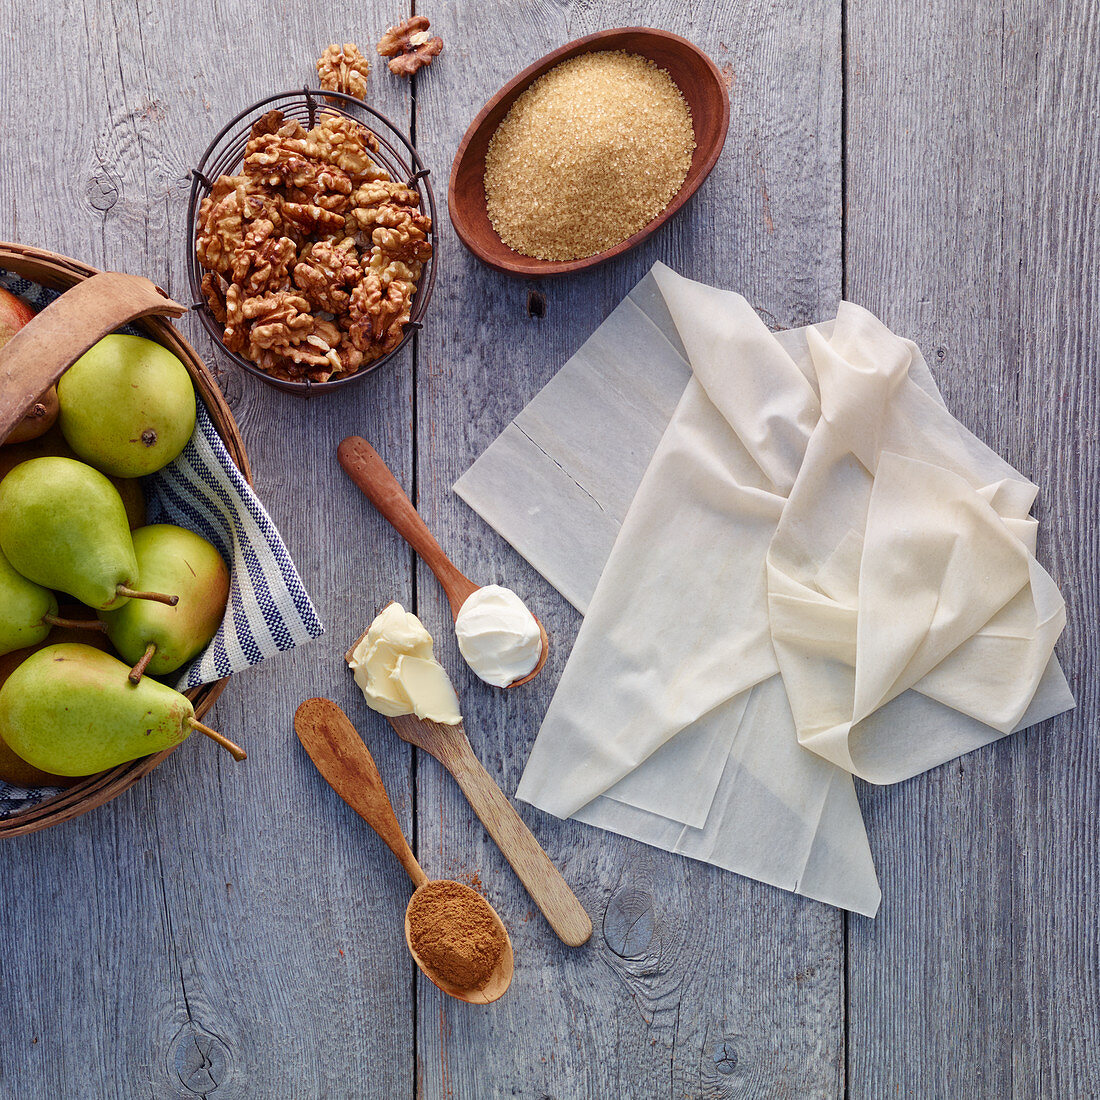 Ingredients for pear tart with filo pastry